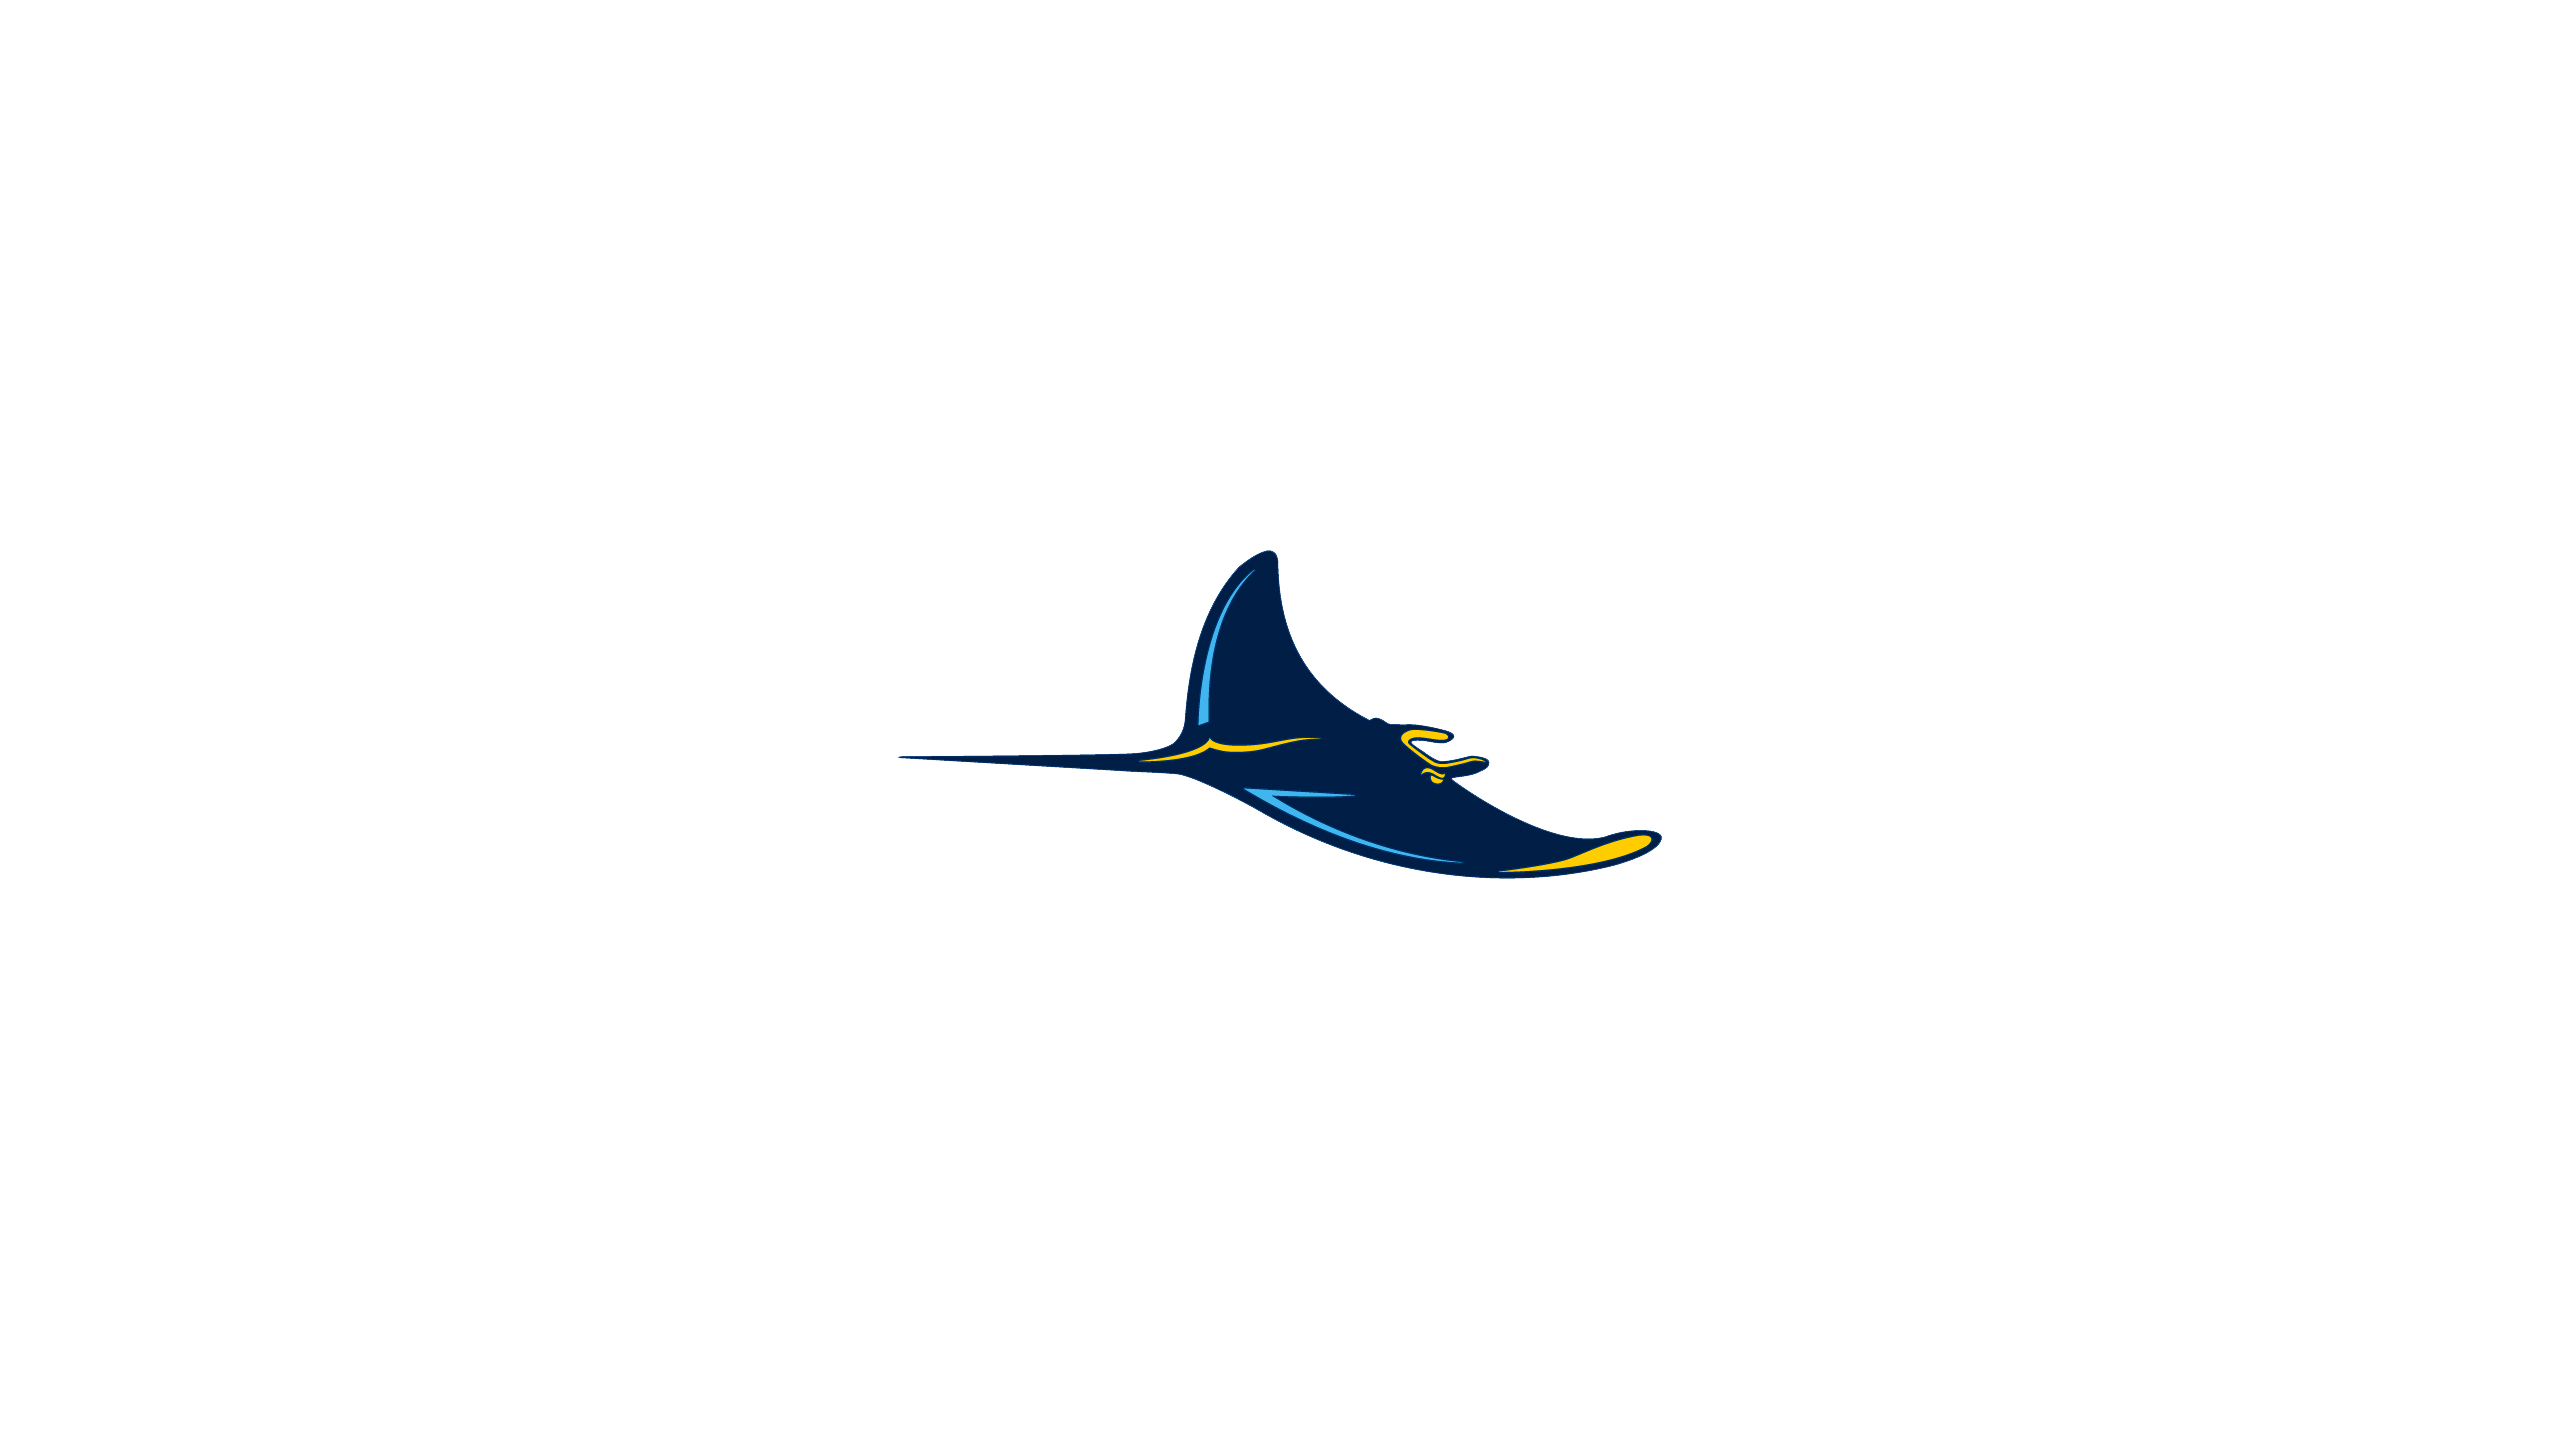 Tampa Bay Rays (Devil Rays)